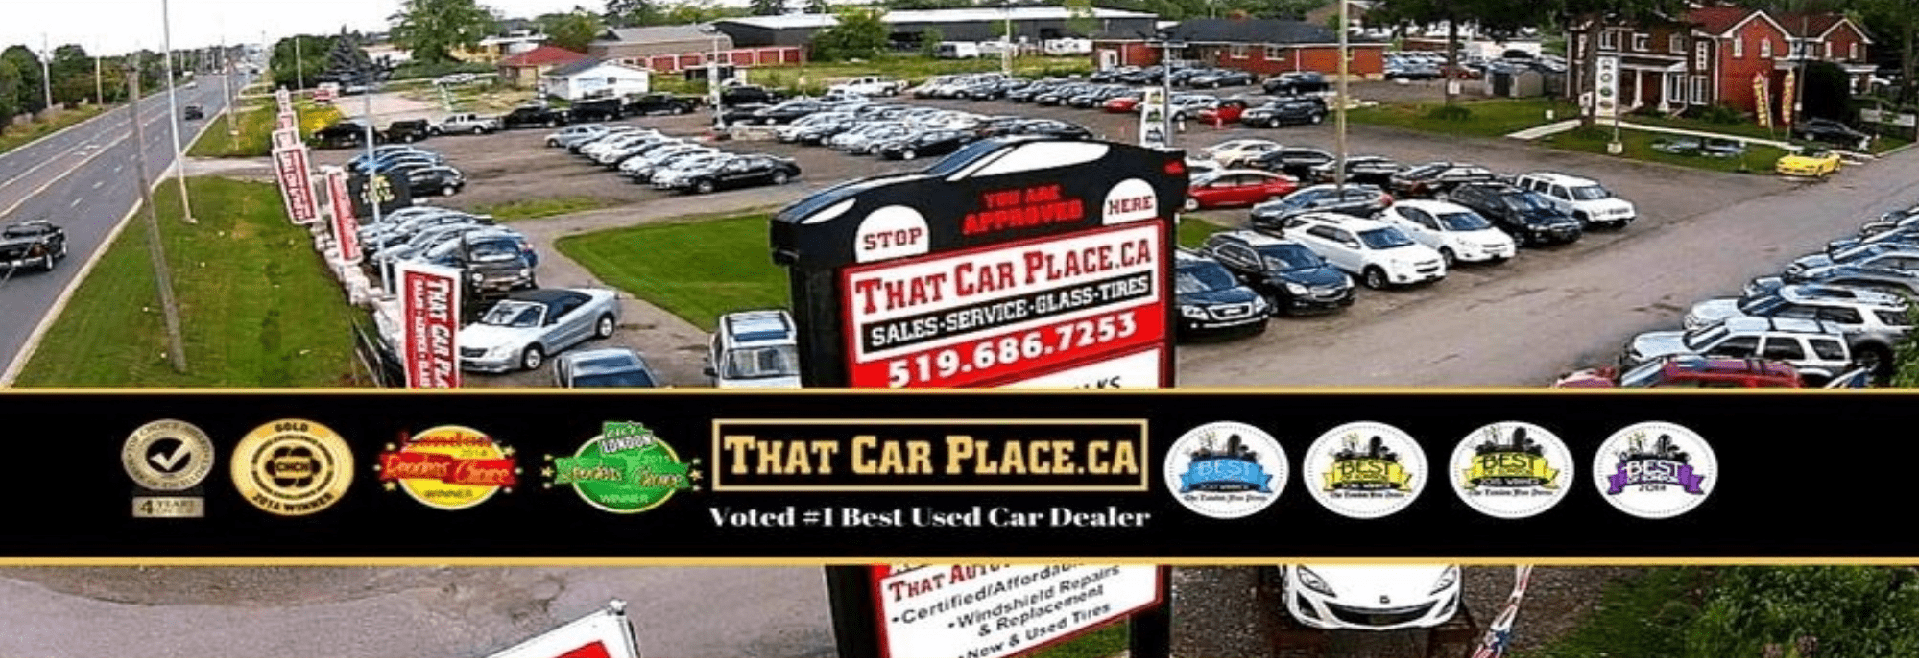 Bad Credit That Car Place London Used Cars Dealer On